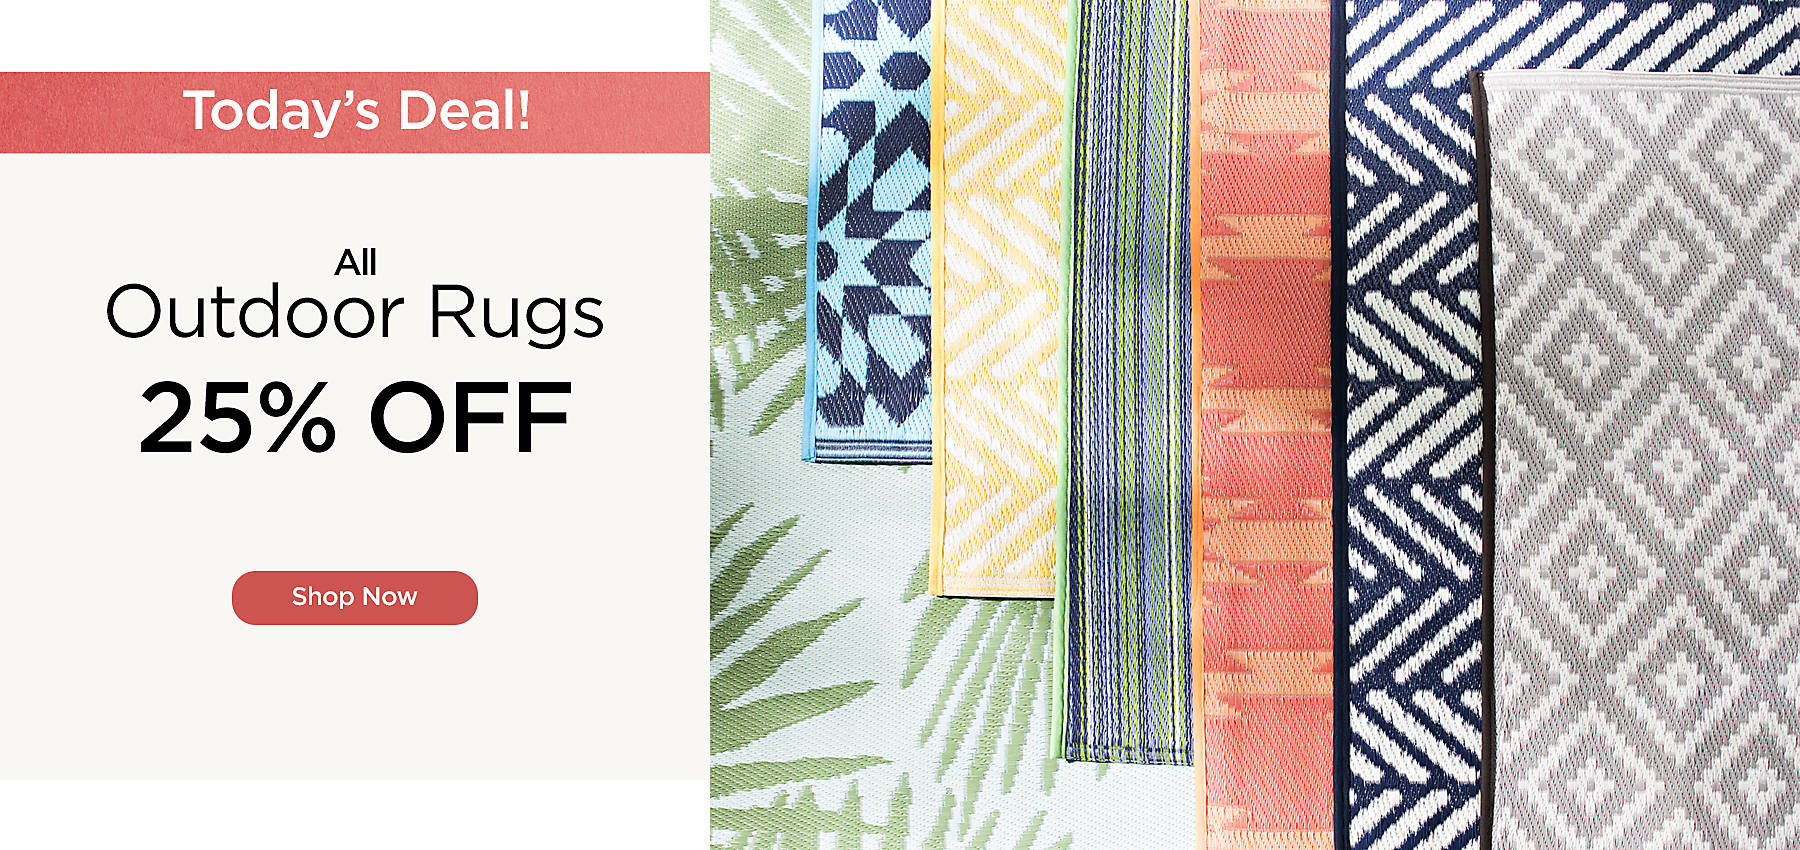 One Day Only - 25% off All Outdoor Rugs - Shop Now